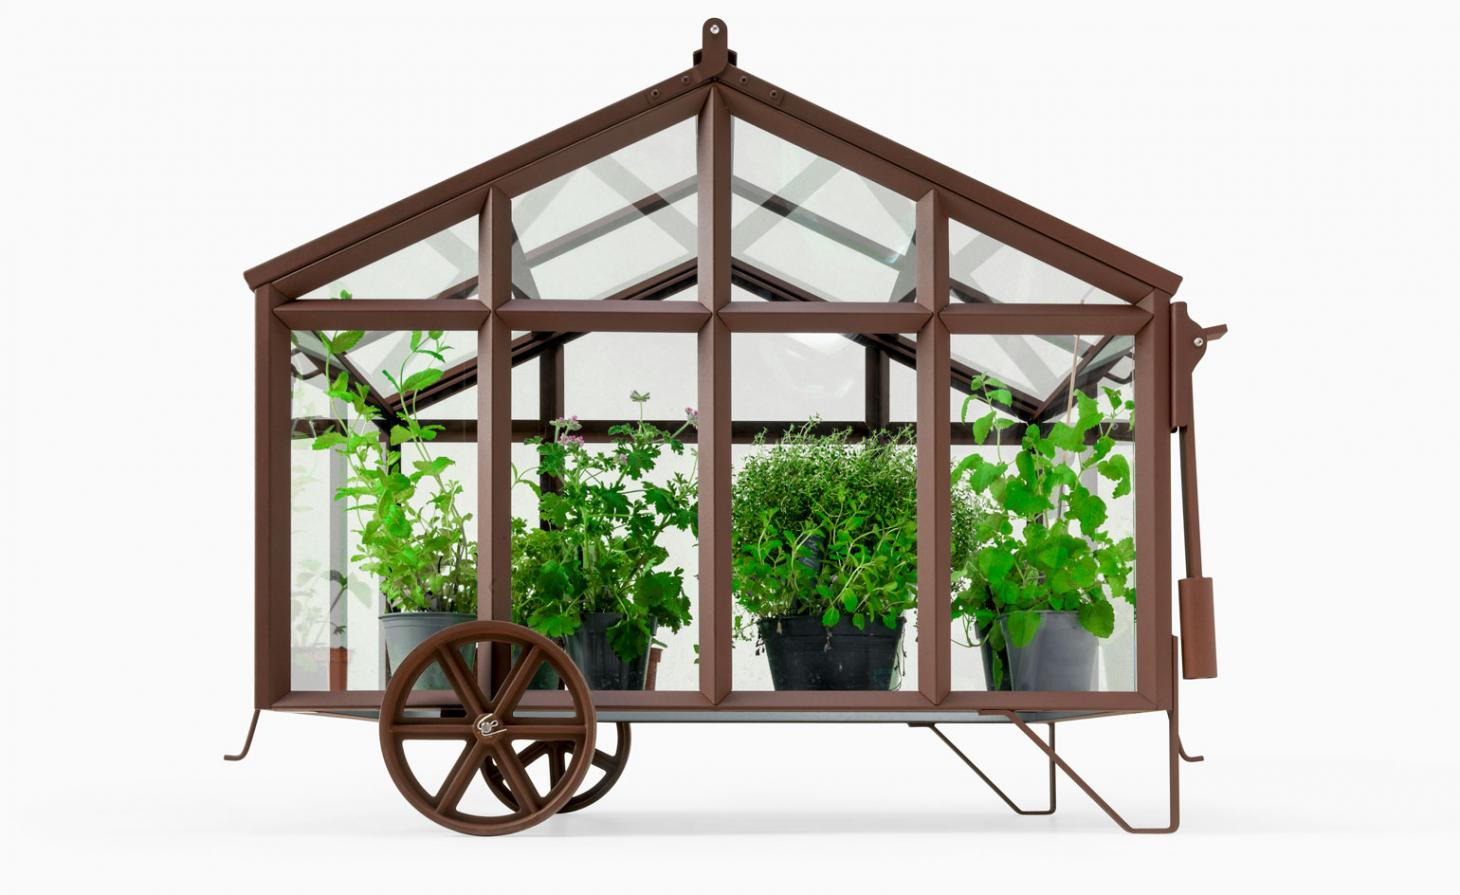 cast iron greenhouse with plants in it